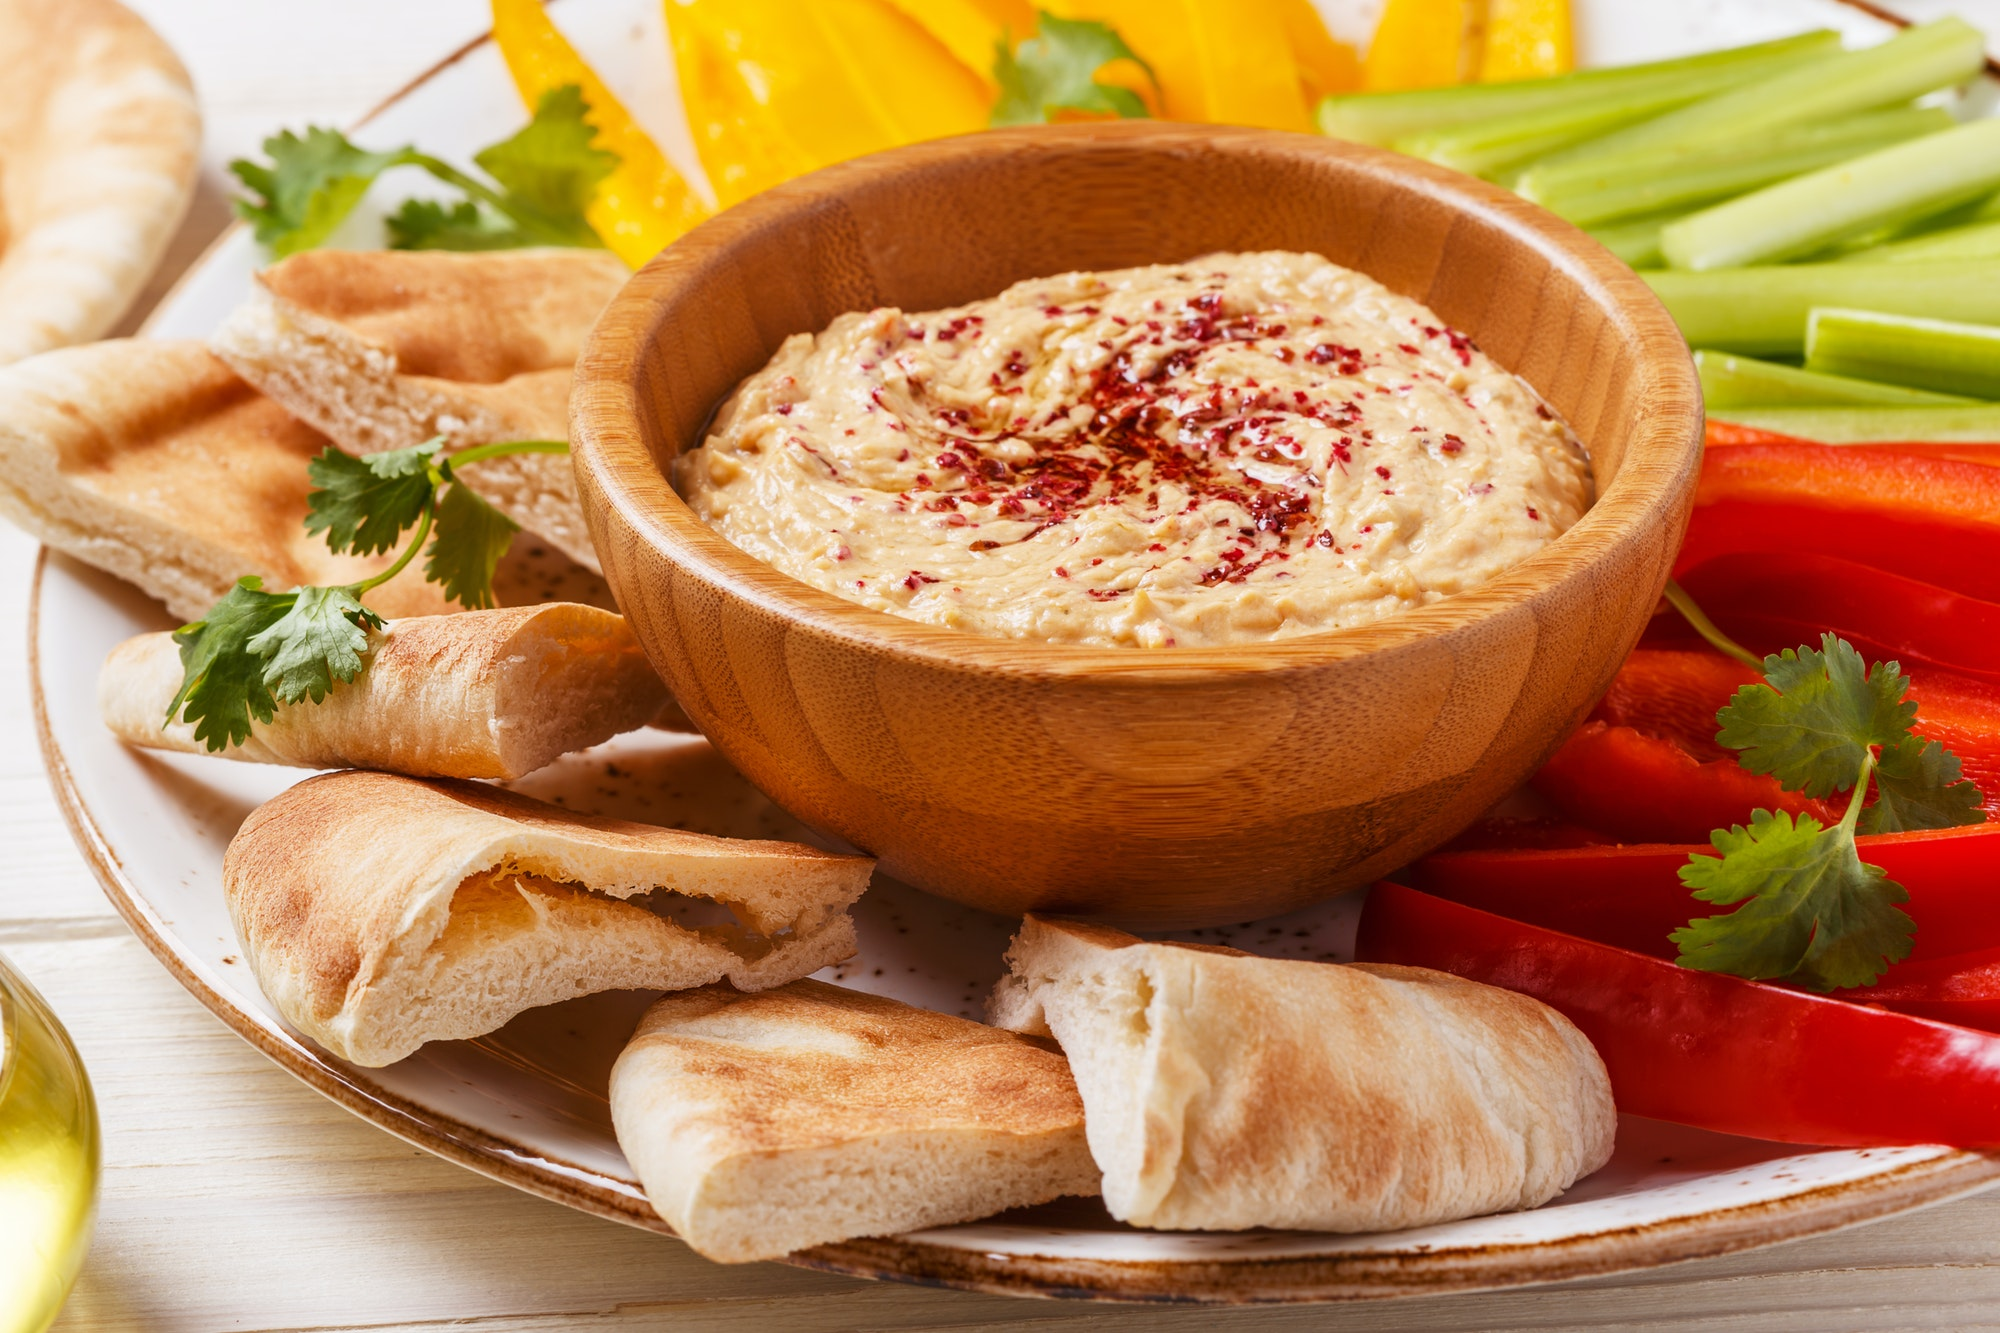 Homemade hummus with assorted fresh vegetables and pita bread.